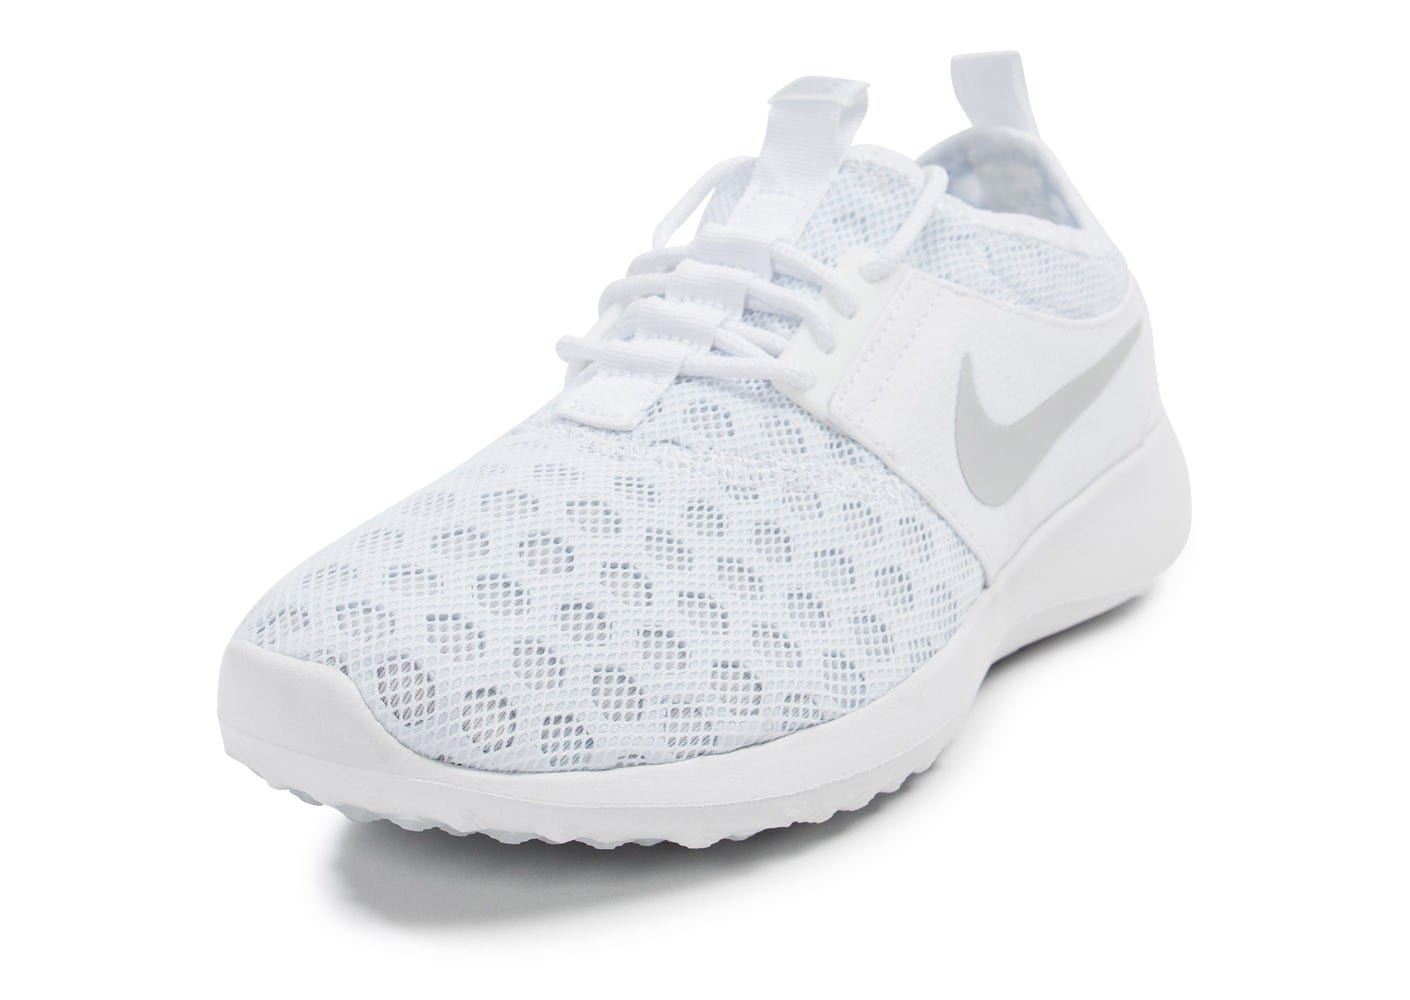 fe34ce79bb2d 2015 New Femme Nike Juvenate Blanche Pure nike juvenate femme blanche. Nike  Juvenate Femme Loup Grise Blanche Cool Grise 724979 001 Chaussures ...